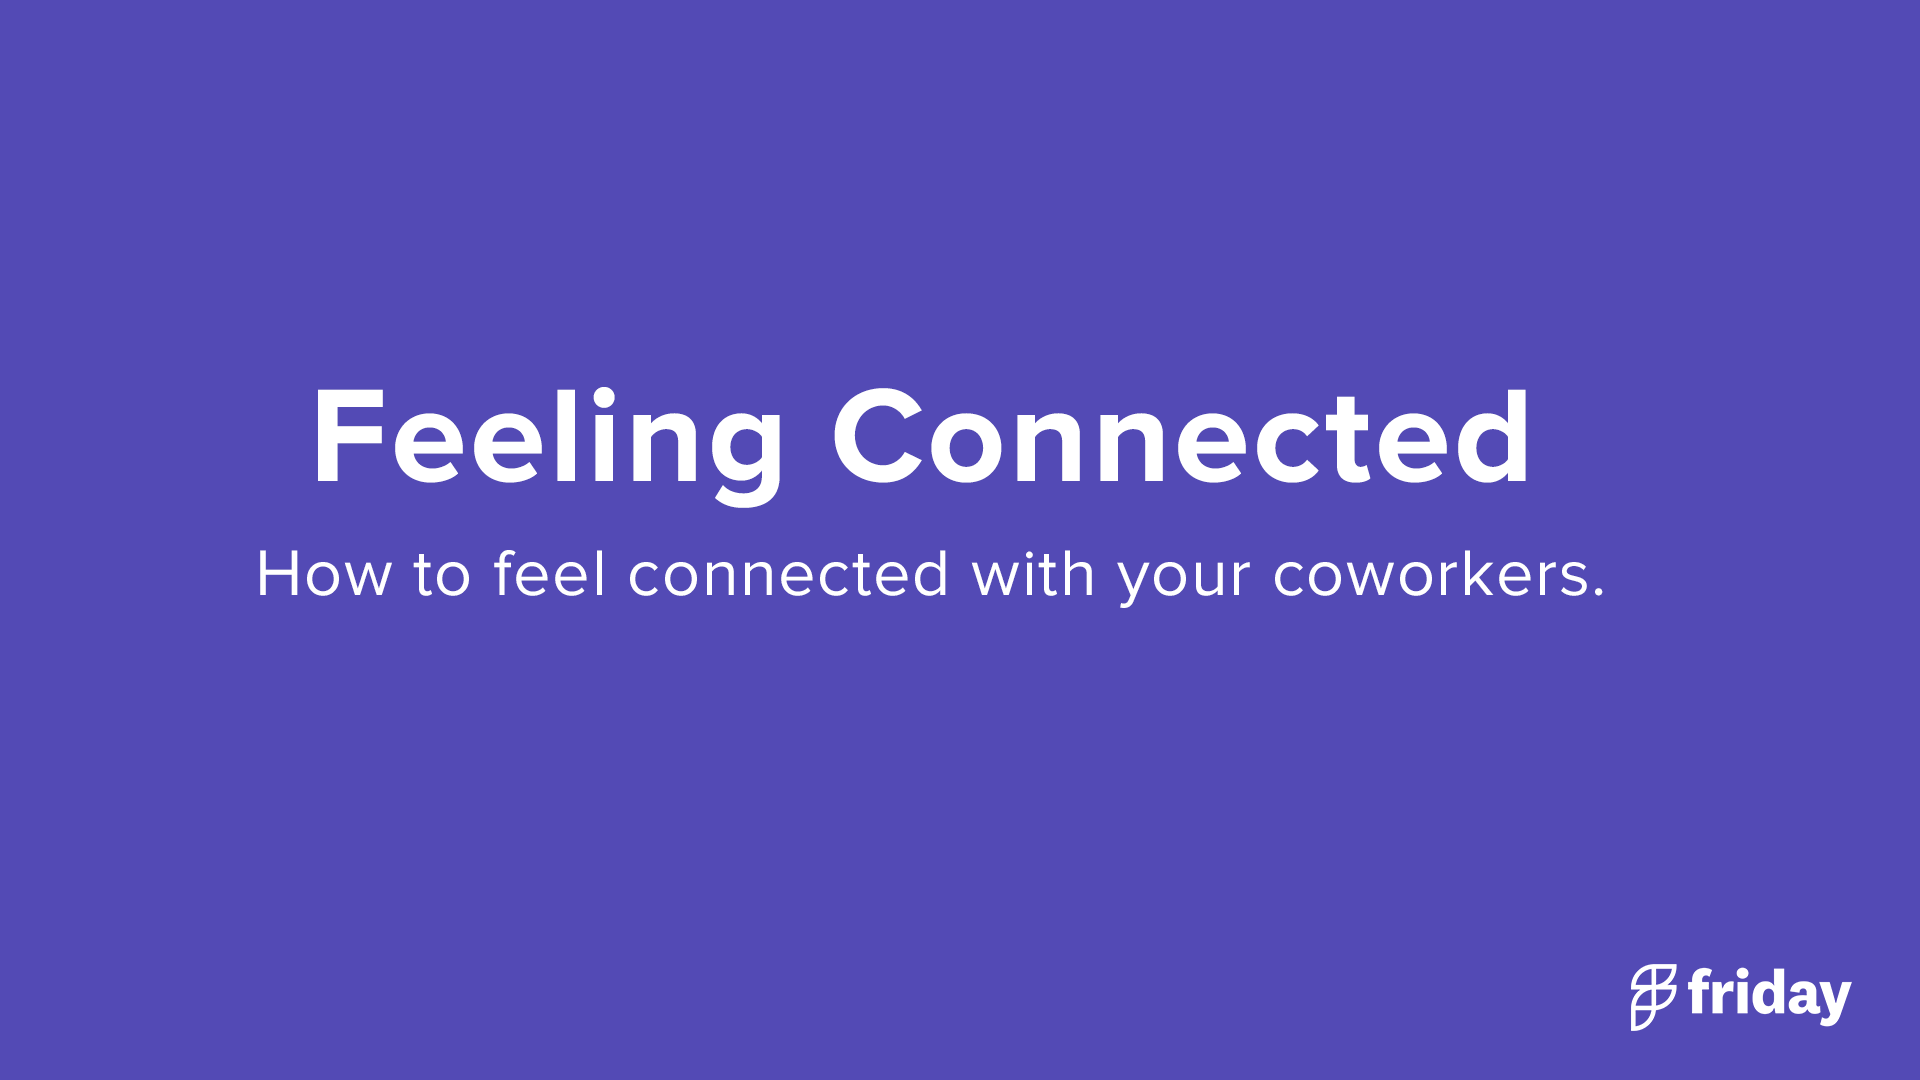 Feeling connected as a distributed team